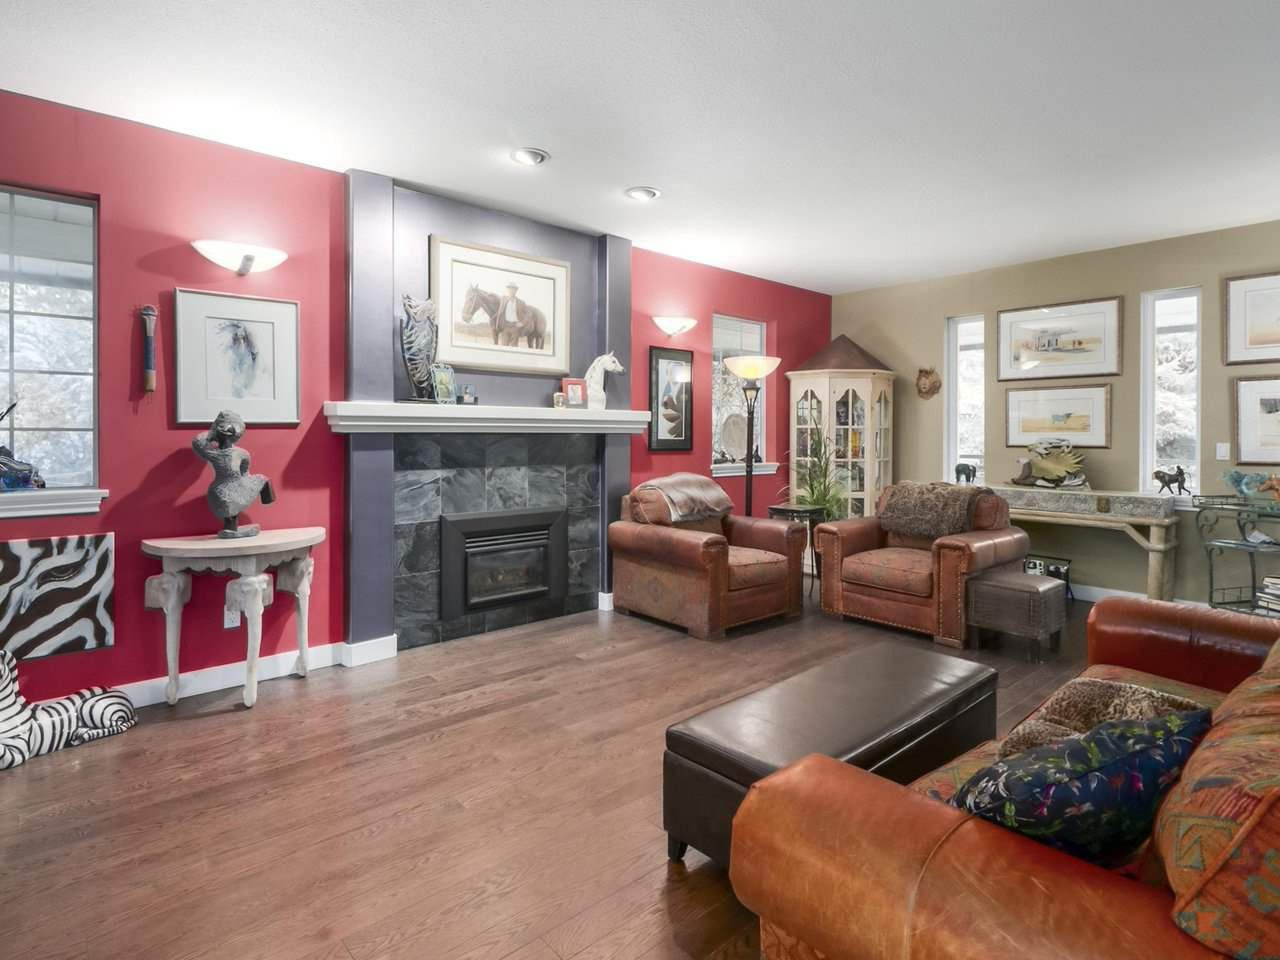 Photo 4: Photos: 13957 32 Avenue in Surrey: Elgin Chantrell House for sale (South Surrey White Rock)  : MLS®# R2466206